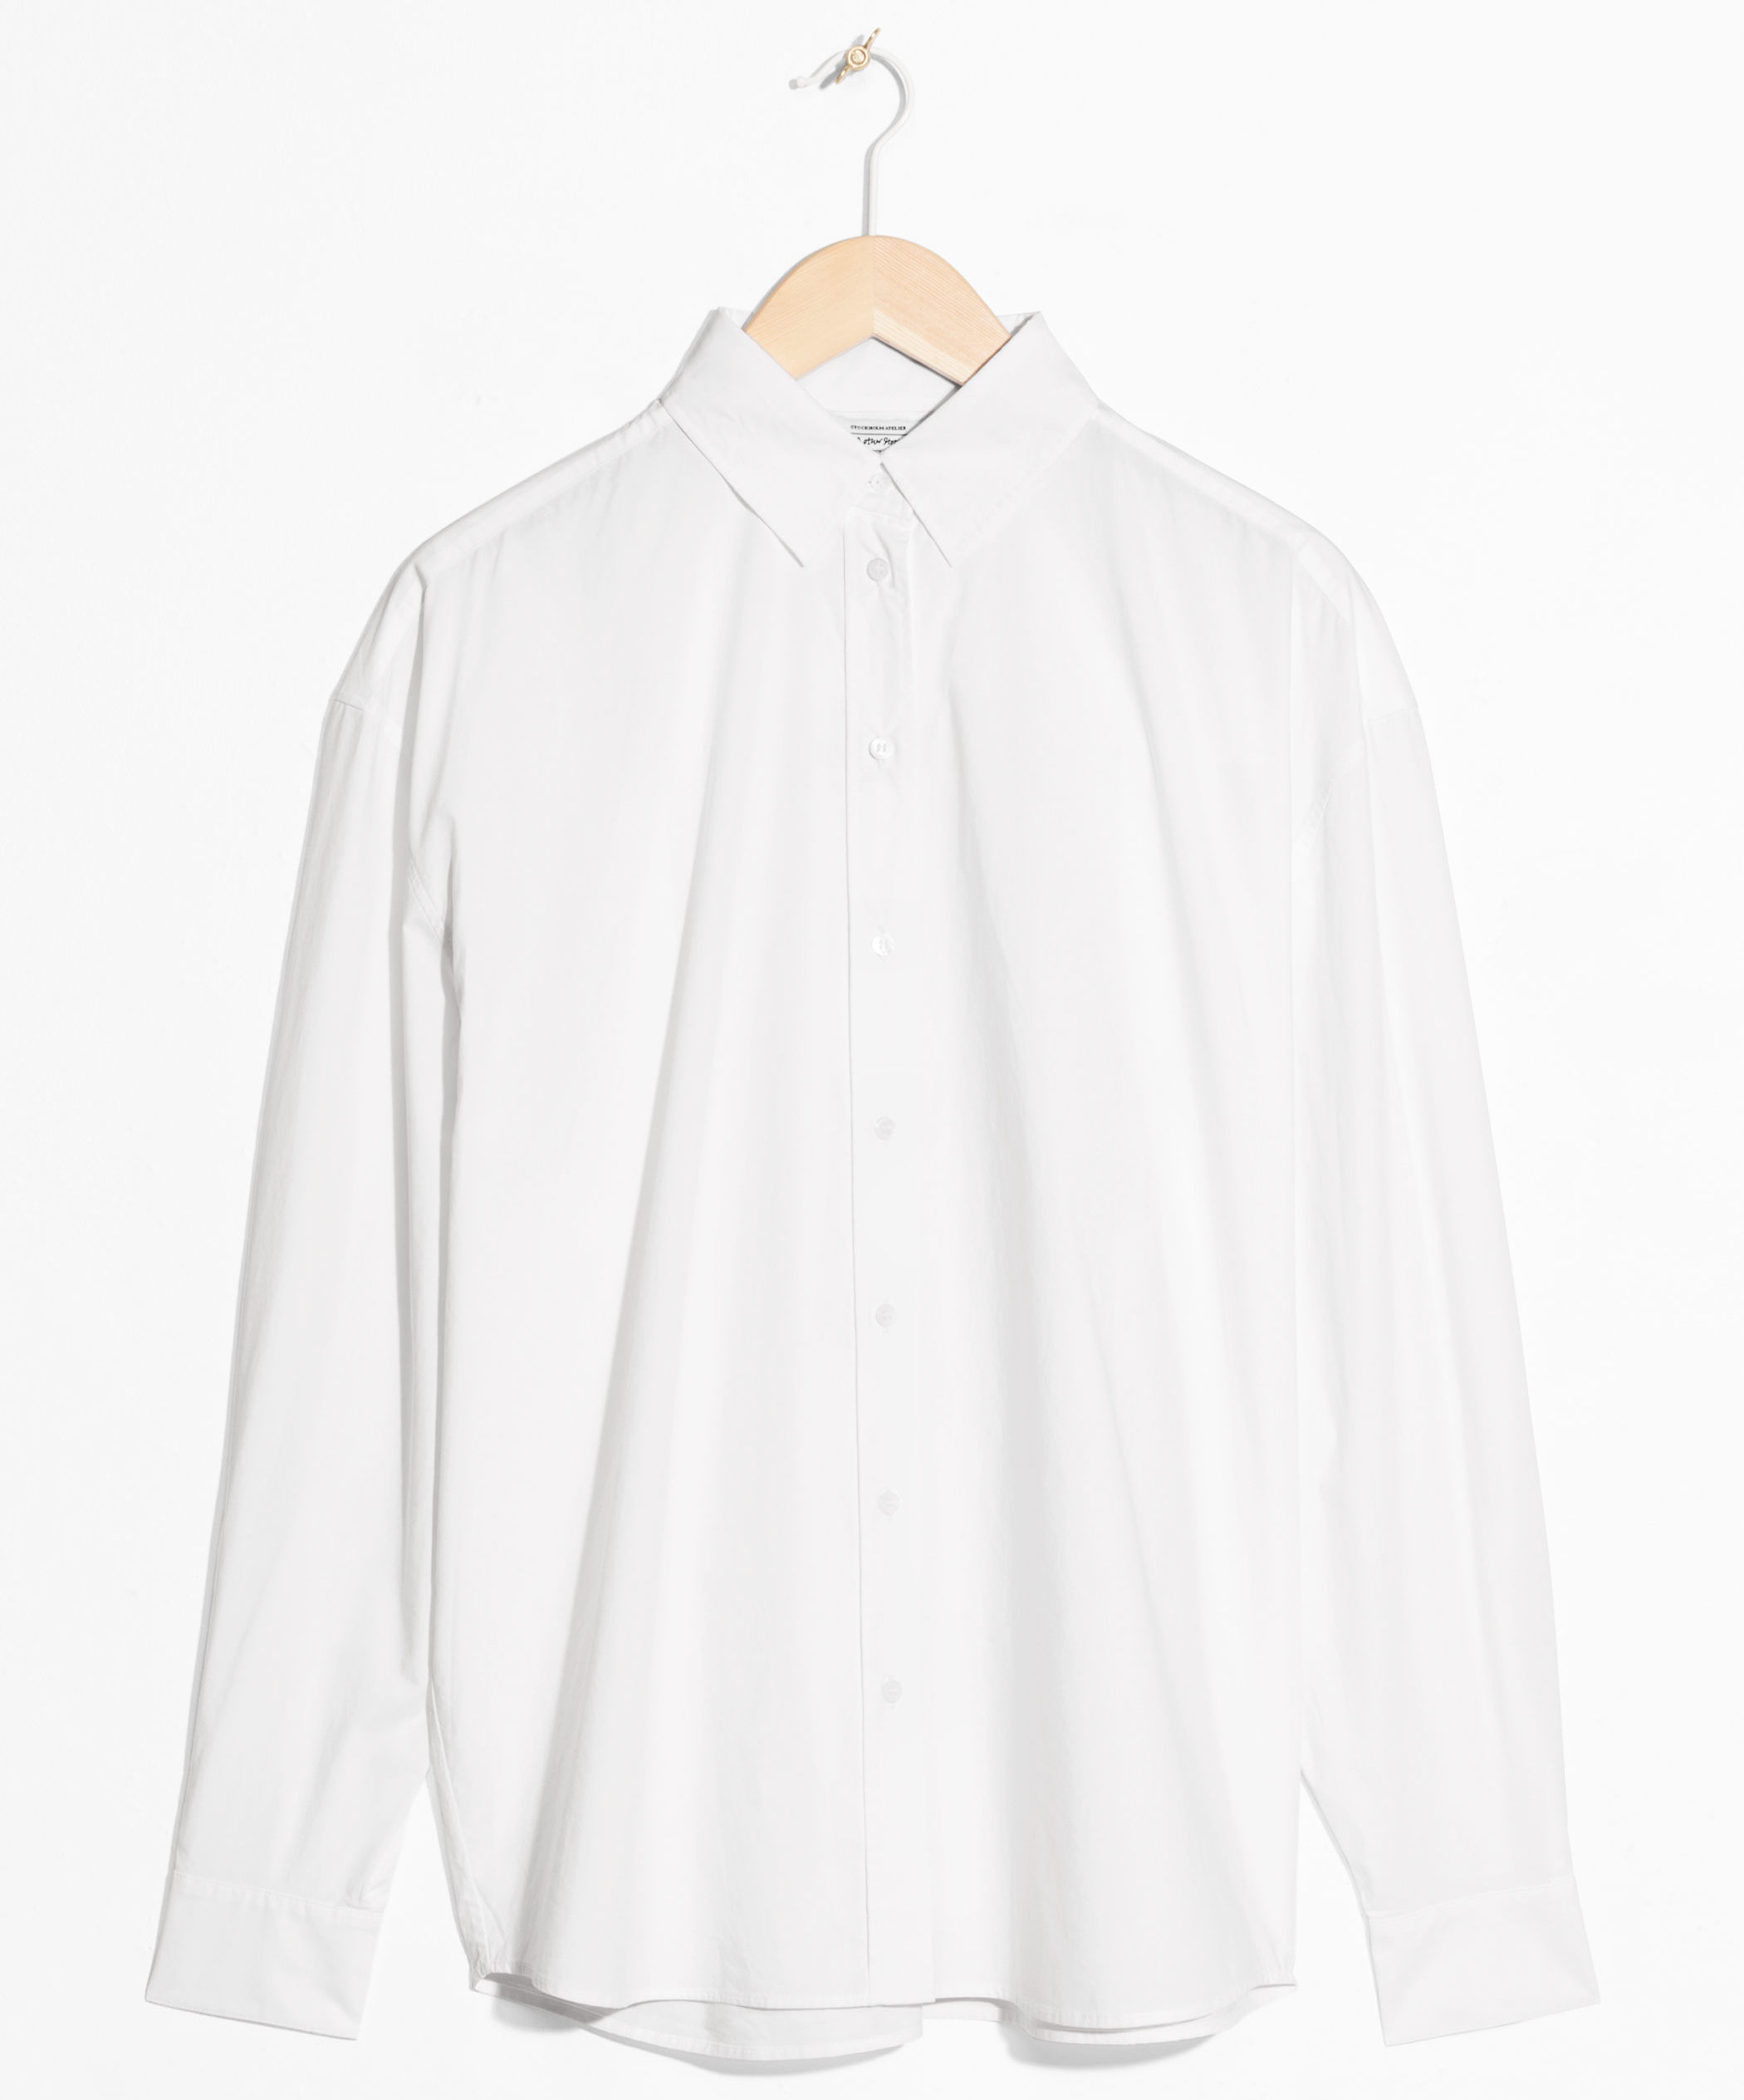 & Other Stories Oversized Crisp Button Up